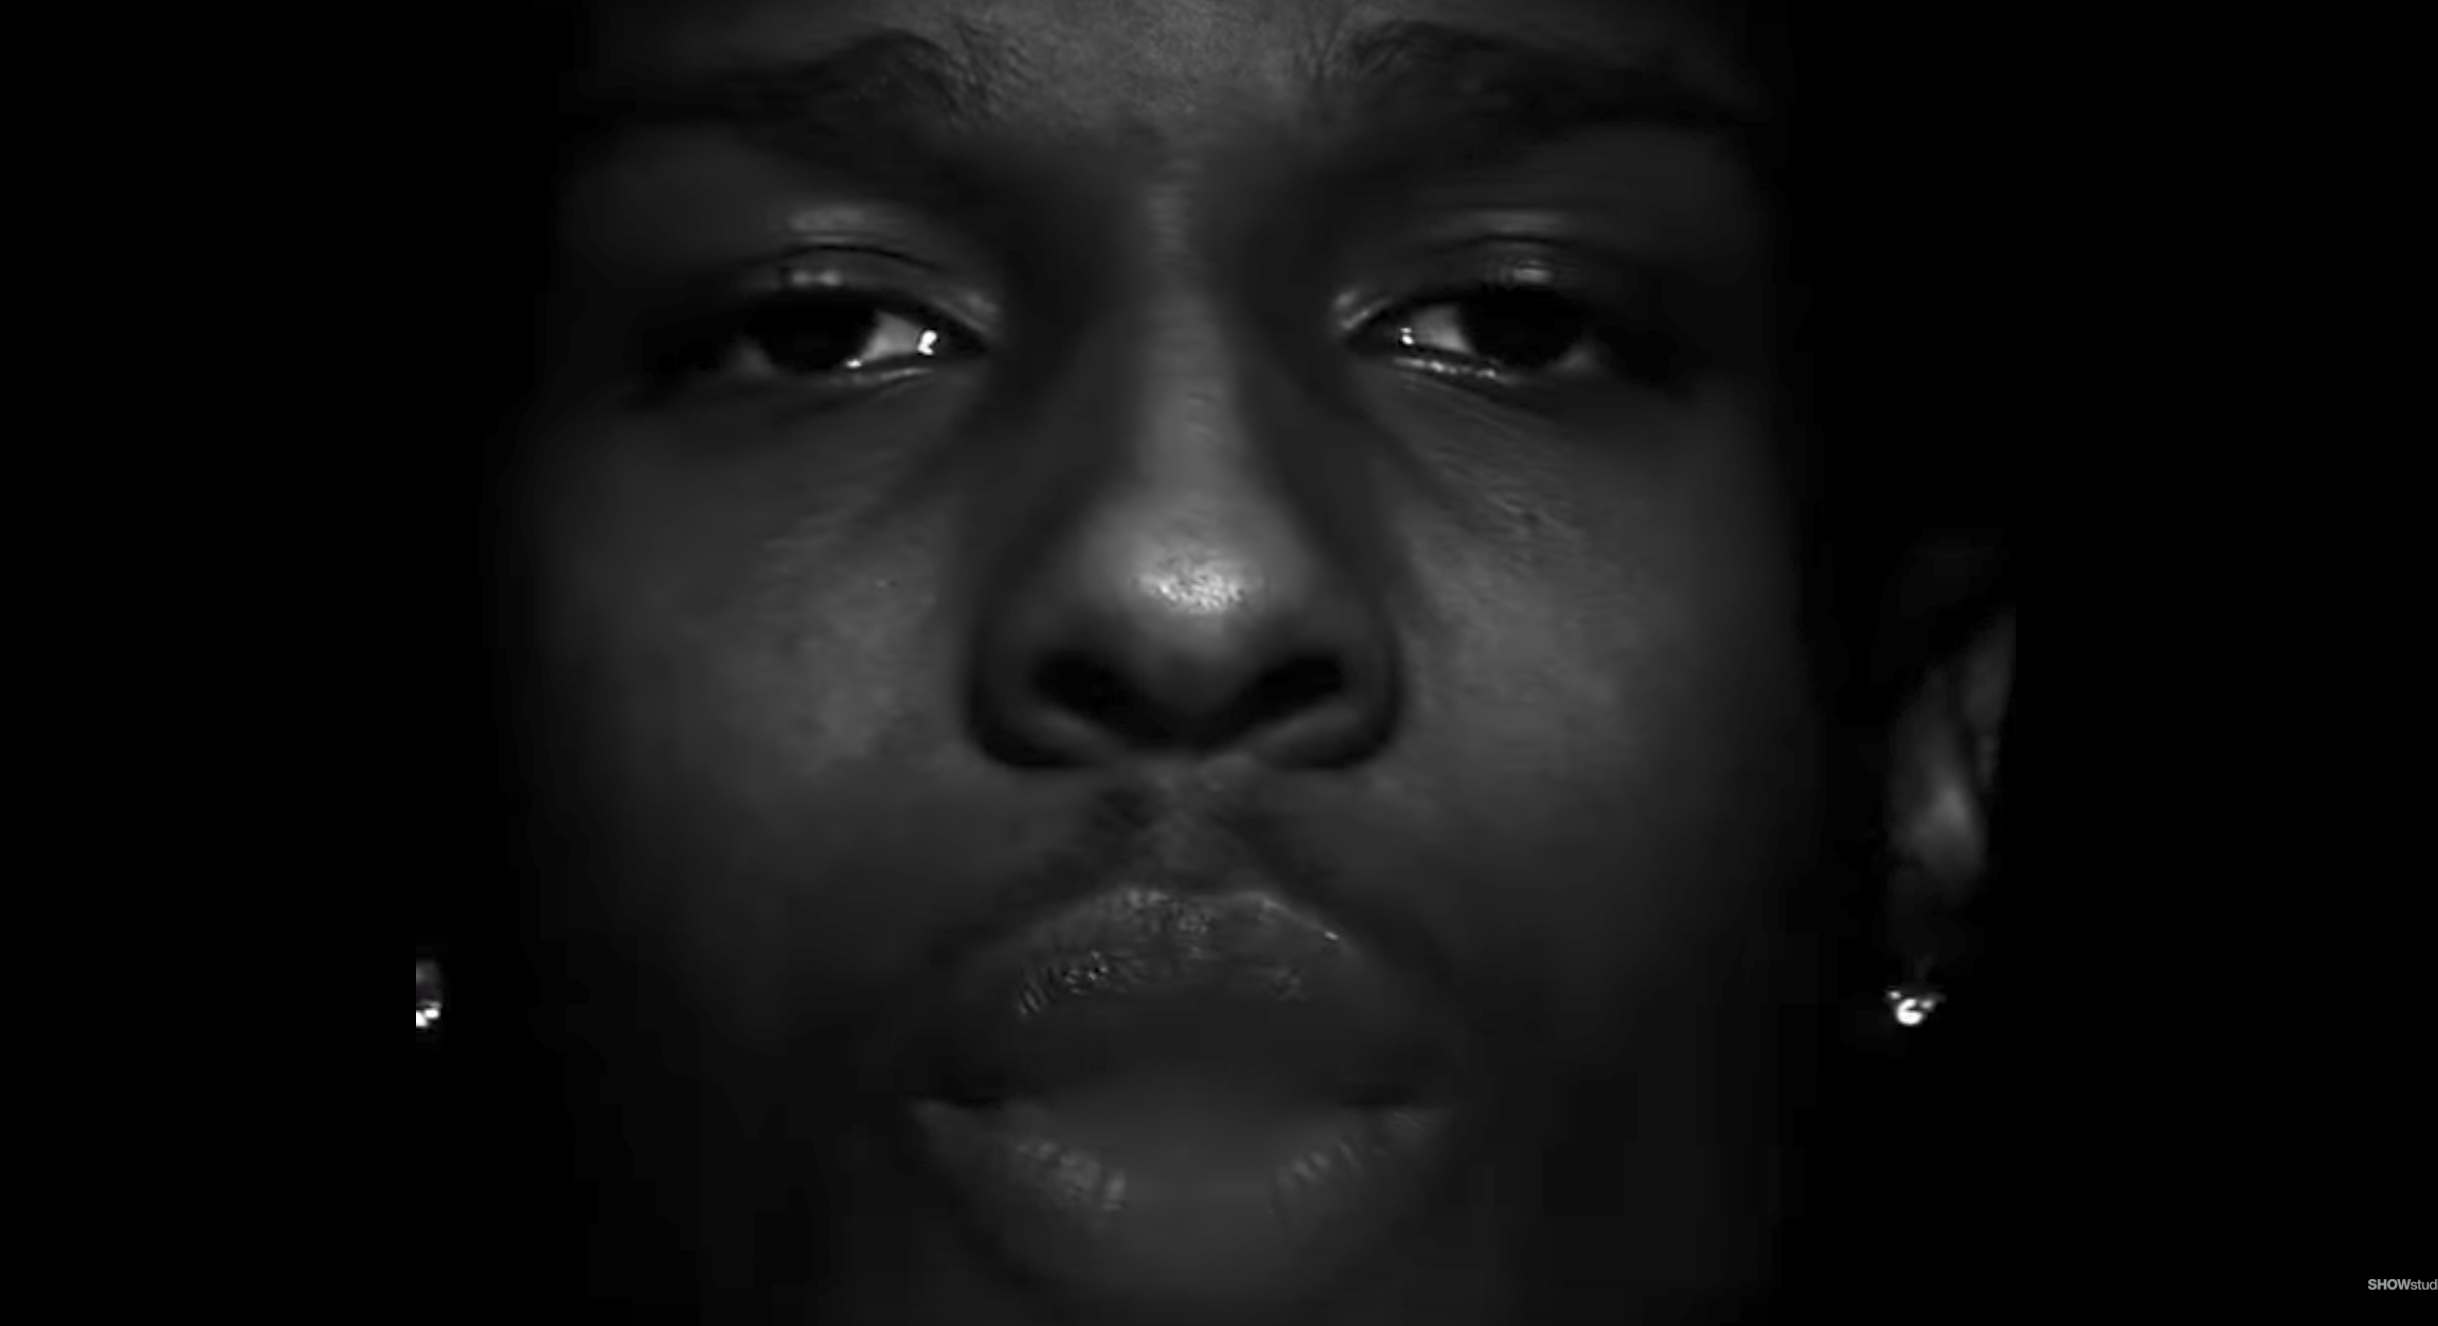 A$AP Rocky's Exclusive SHOWStudio Interview Discusses His Status, Raf Simons, Role Models And More.